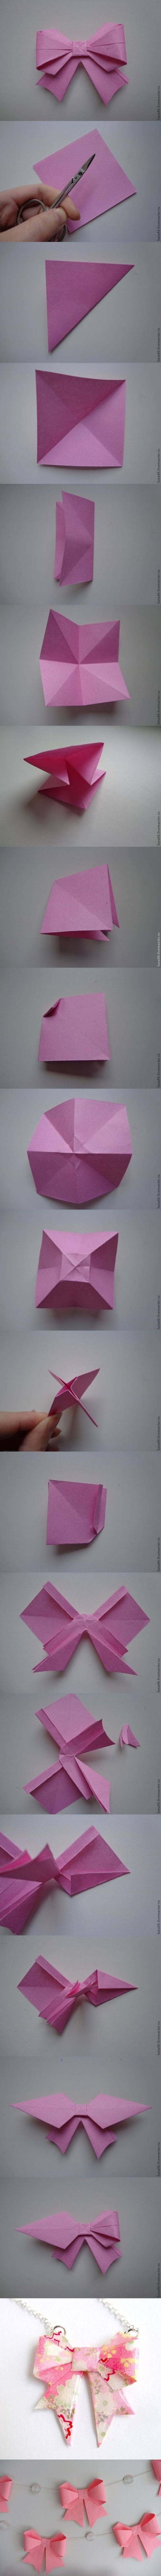 Make An Amazing Bow Tie Using Just A Paper